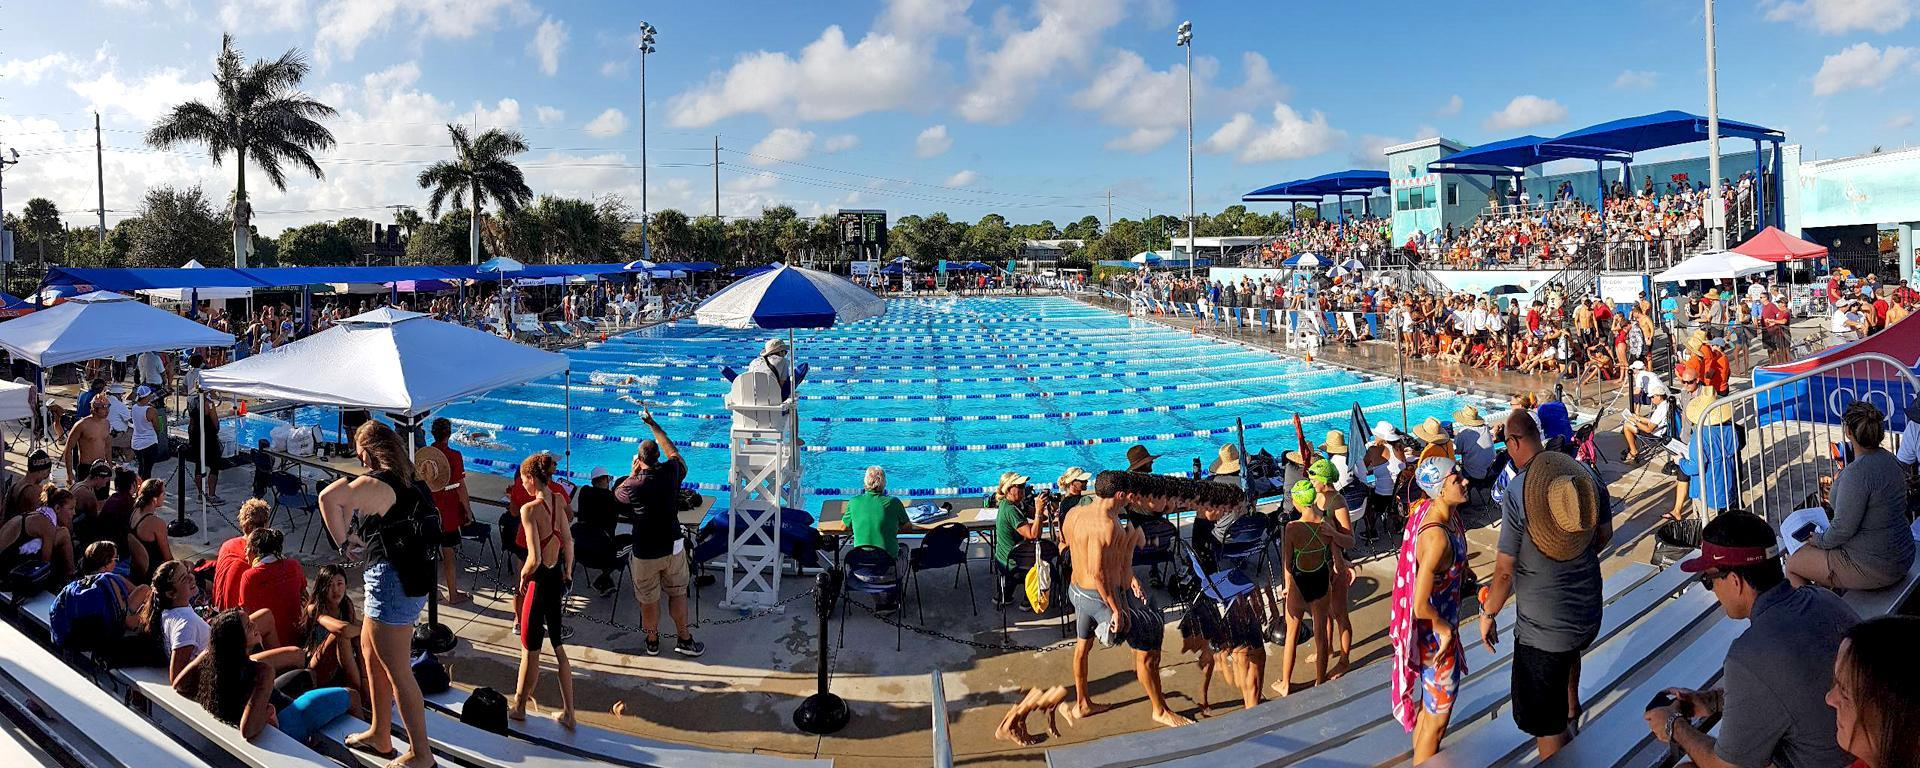 A competitive swim meet at Sailfish Splash Waterpark